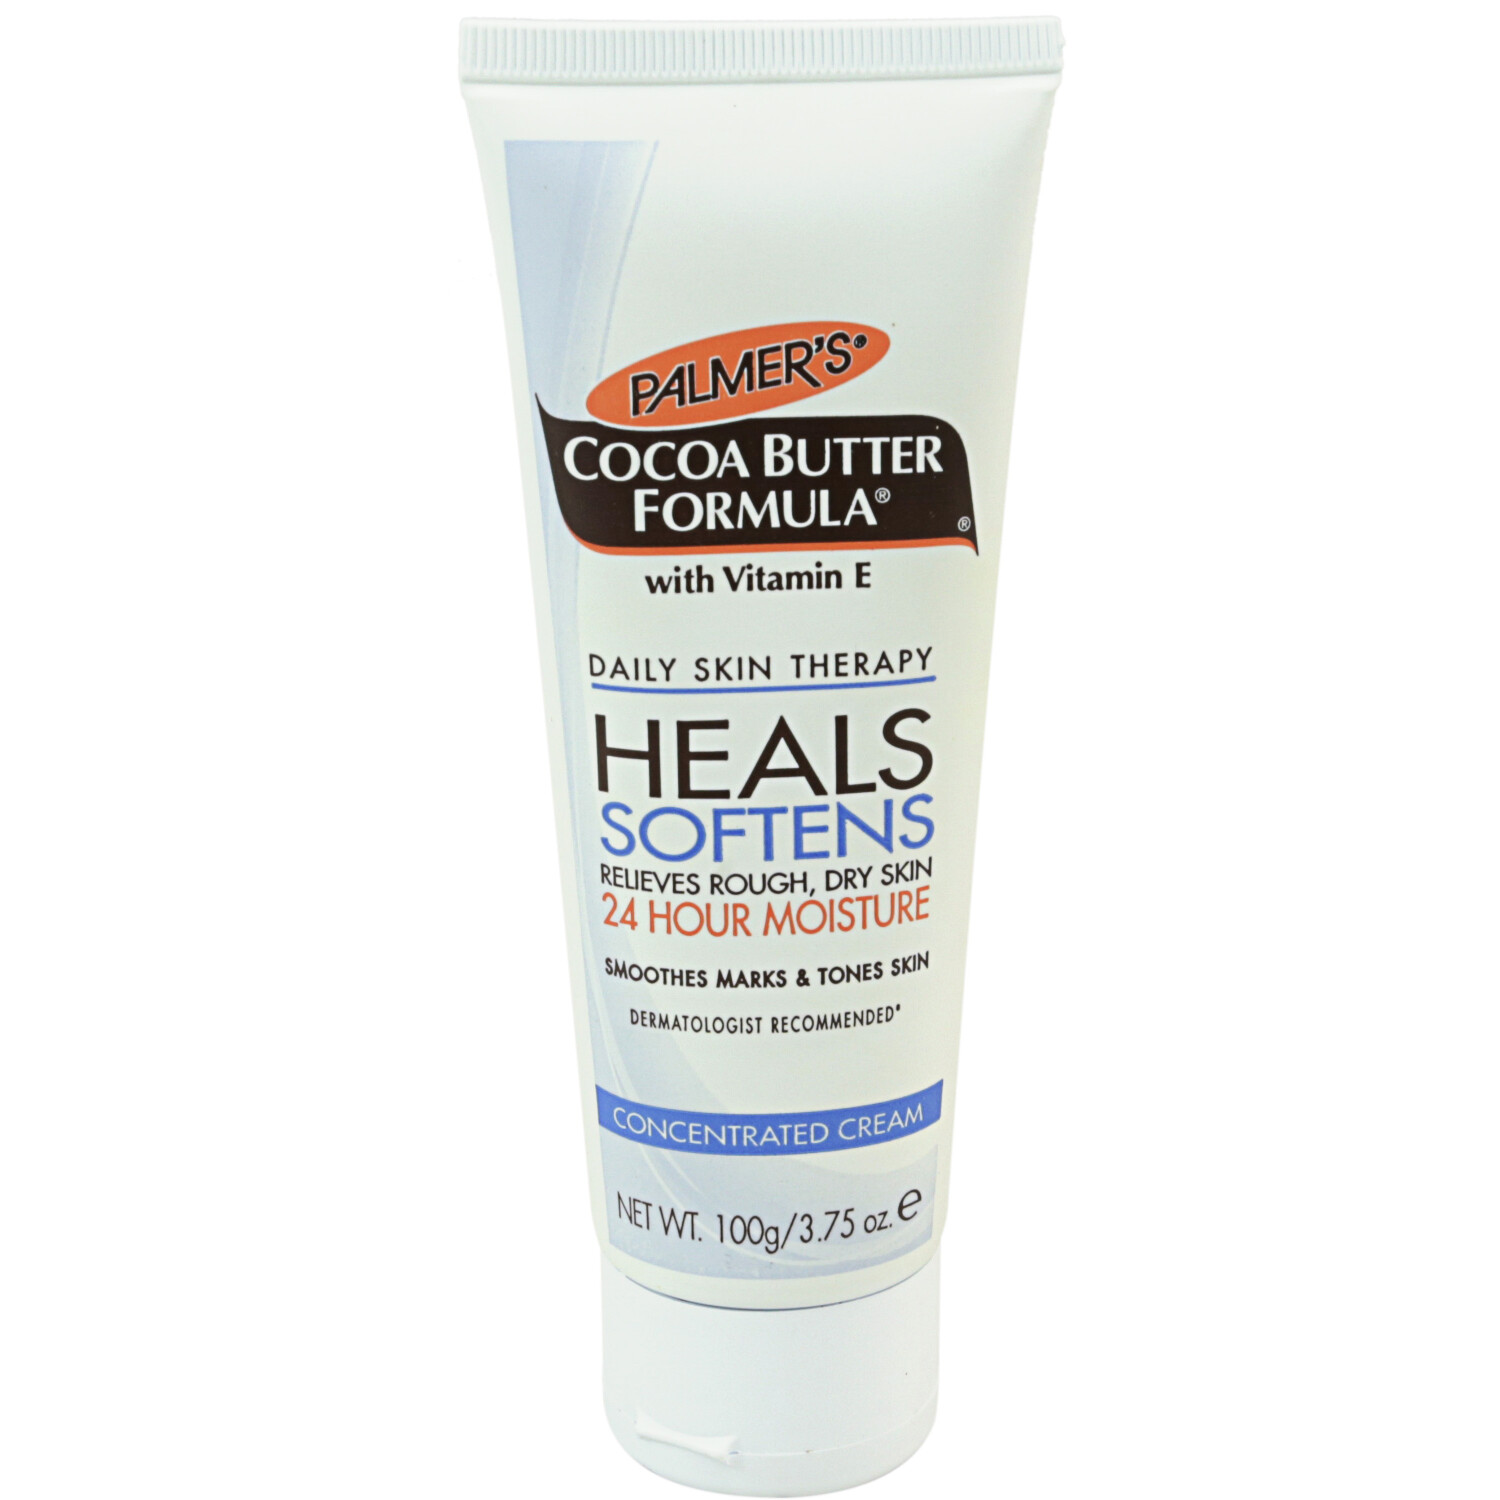 Palmer's Cocoa Butter Formula Heals Softens Daily Skin Ther Lotion 4350